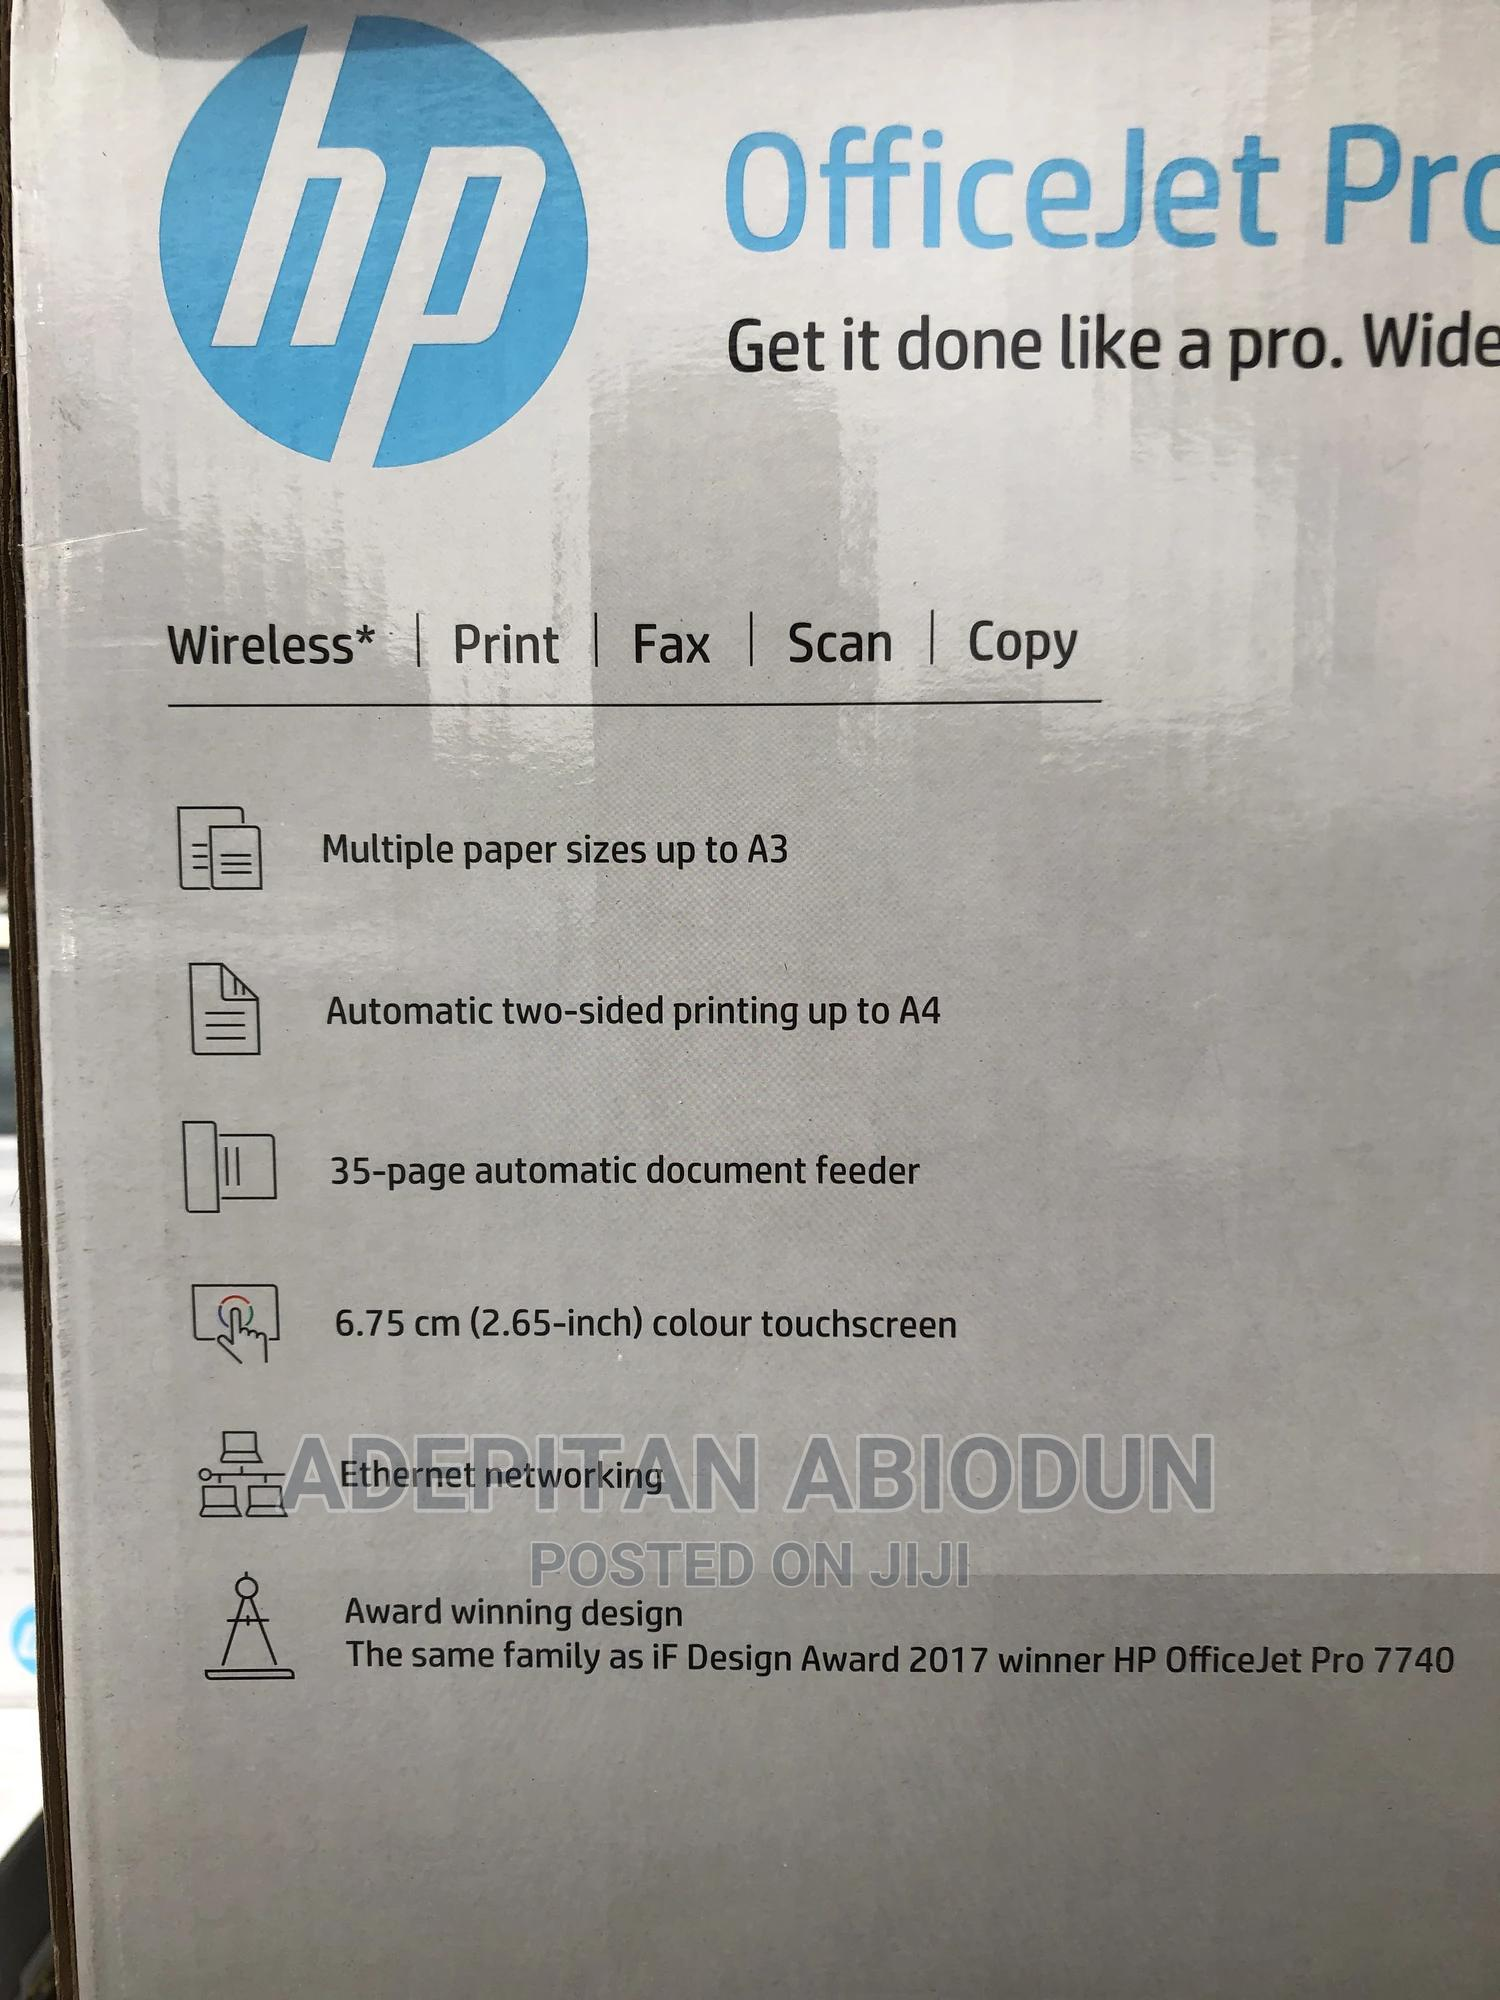 Archive: HP Officejet Pro 7720 Wide Format All-In-One Printer